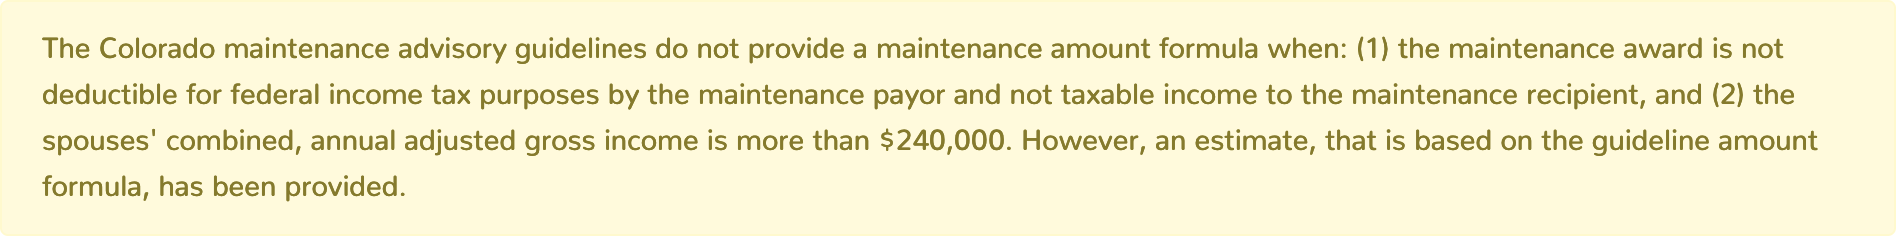 Colorado Maintenance Calculator combined adjusted gross income greater than 240000